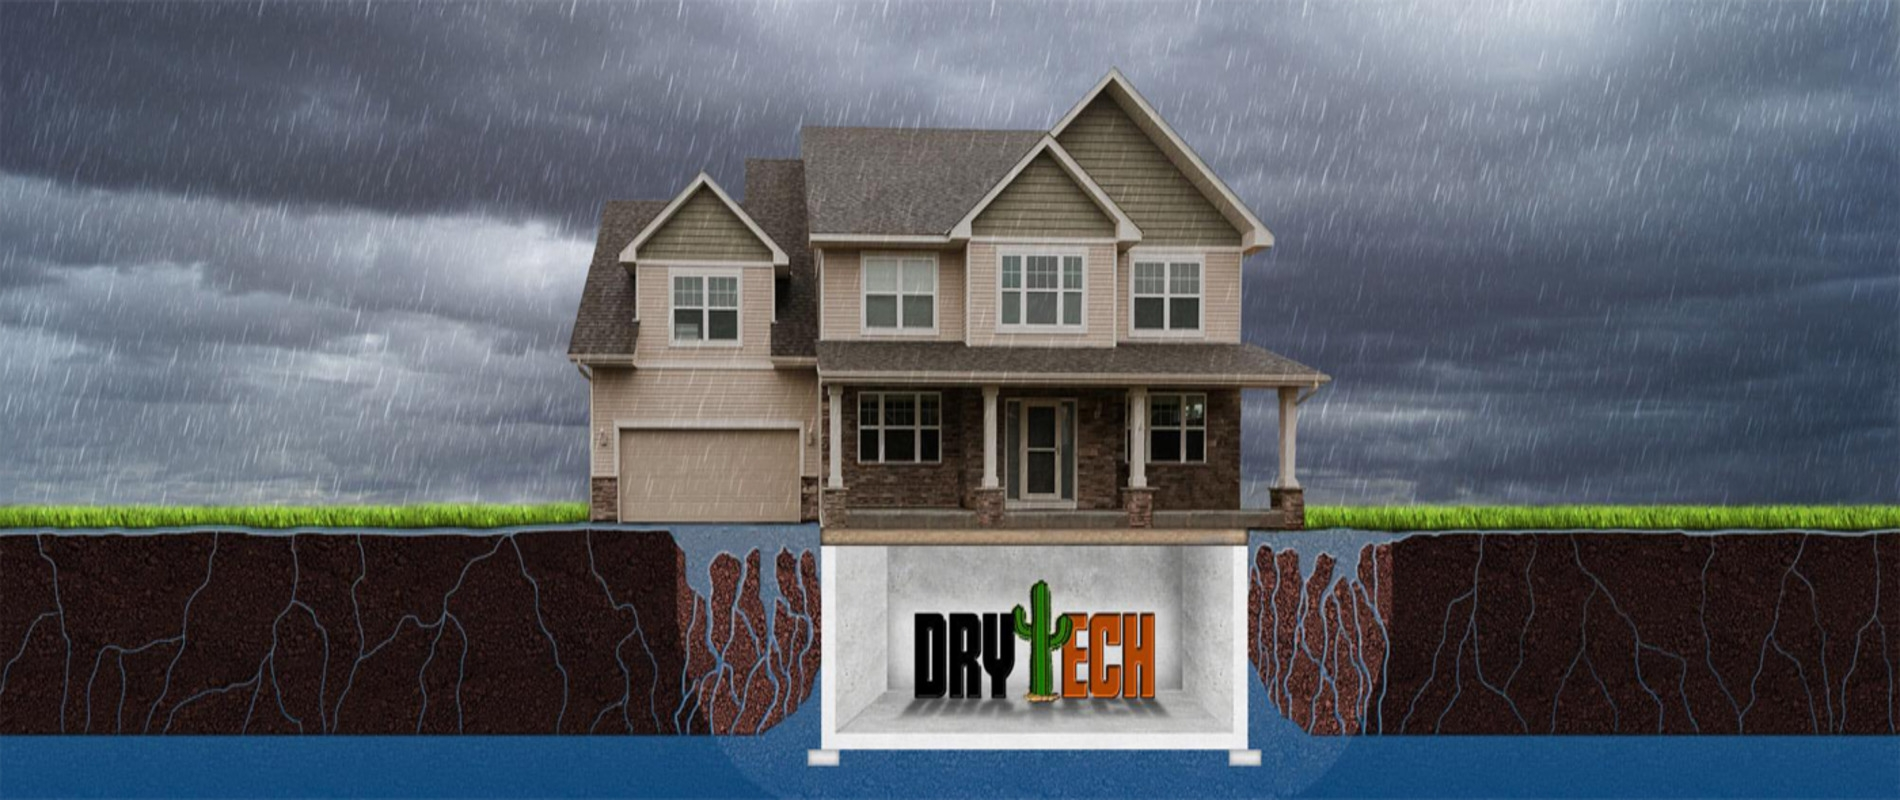 Dry Tech Waterproofing Solutions (@drytech) Cover Image